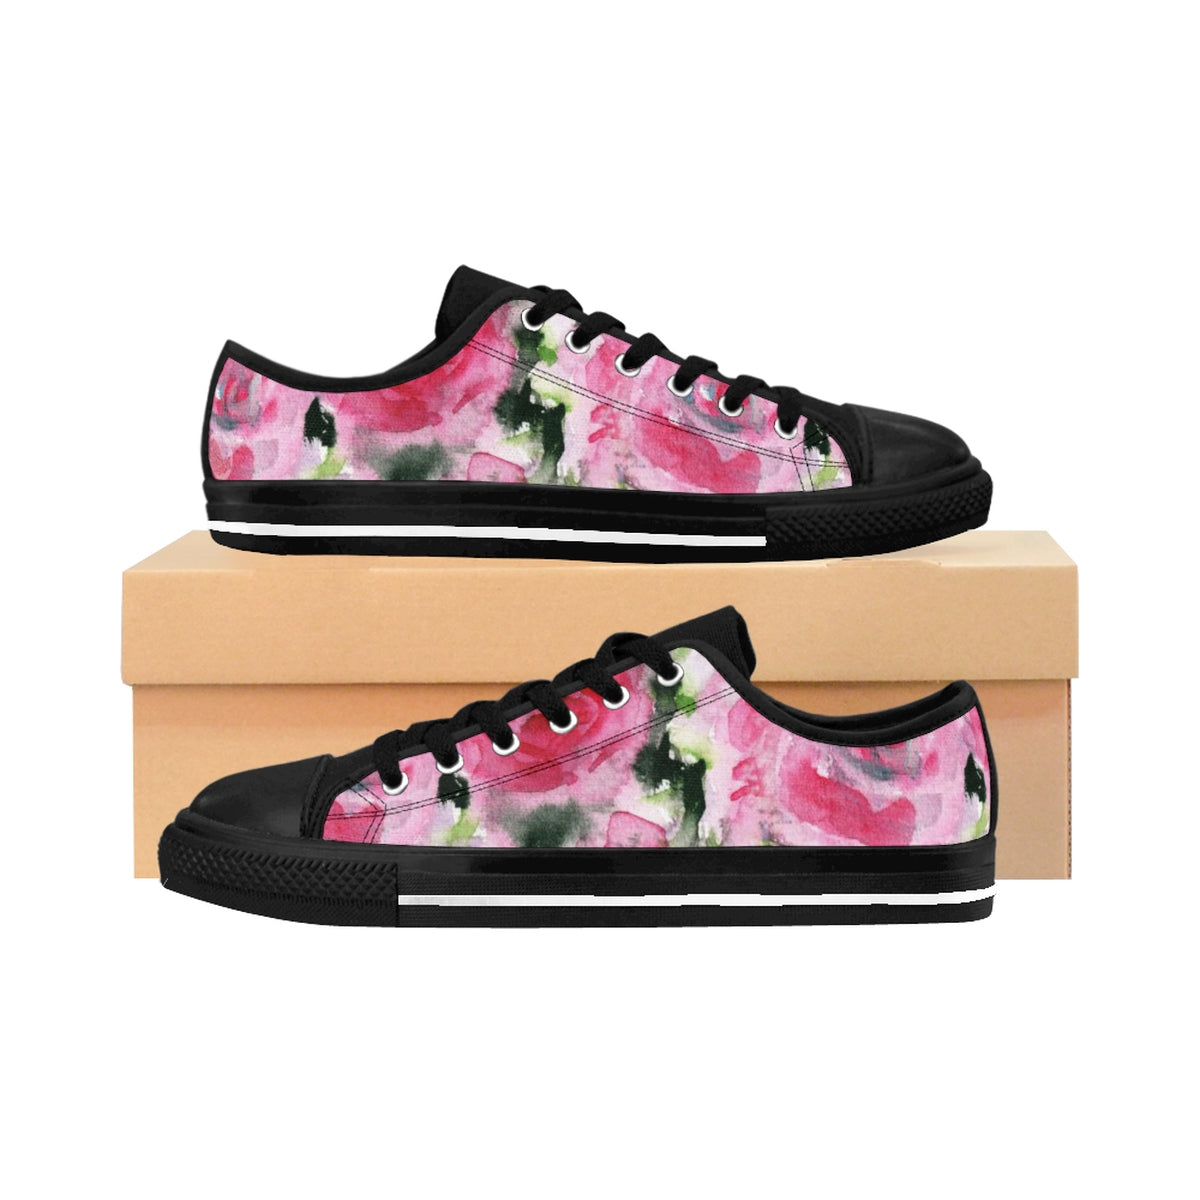 Pink Garden Fairy Rose Floral Designer Low Top Women's Sneakers Shoes (US Size 6-12)-Women's Low Top Sneakers-US 10-Heidi Kimura Art LLC